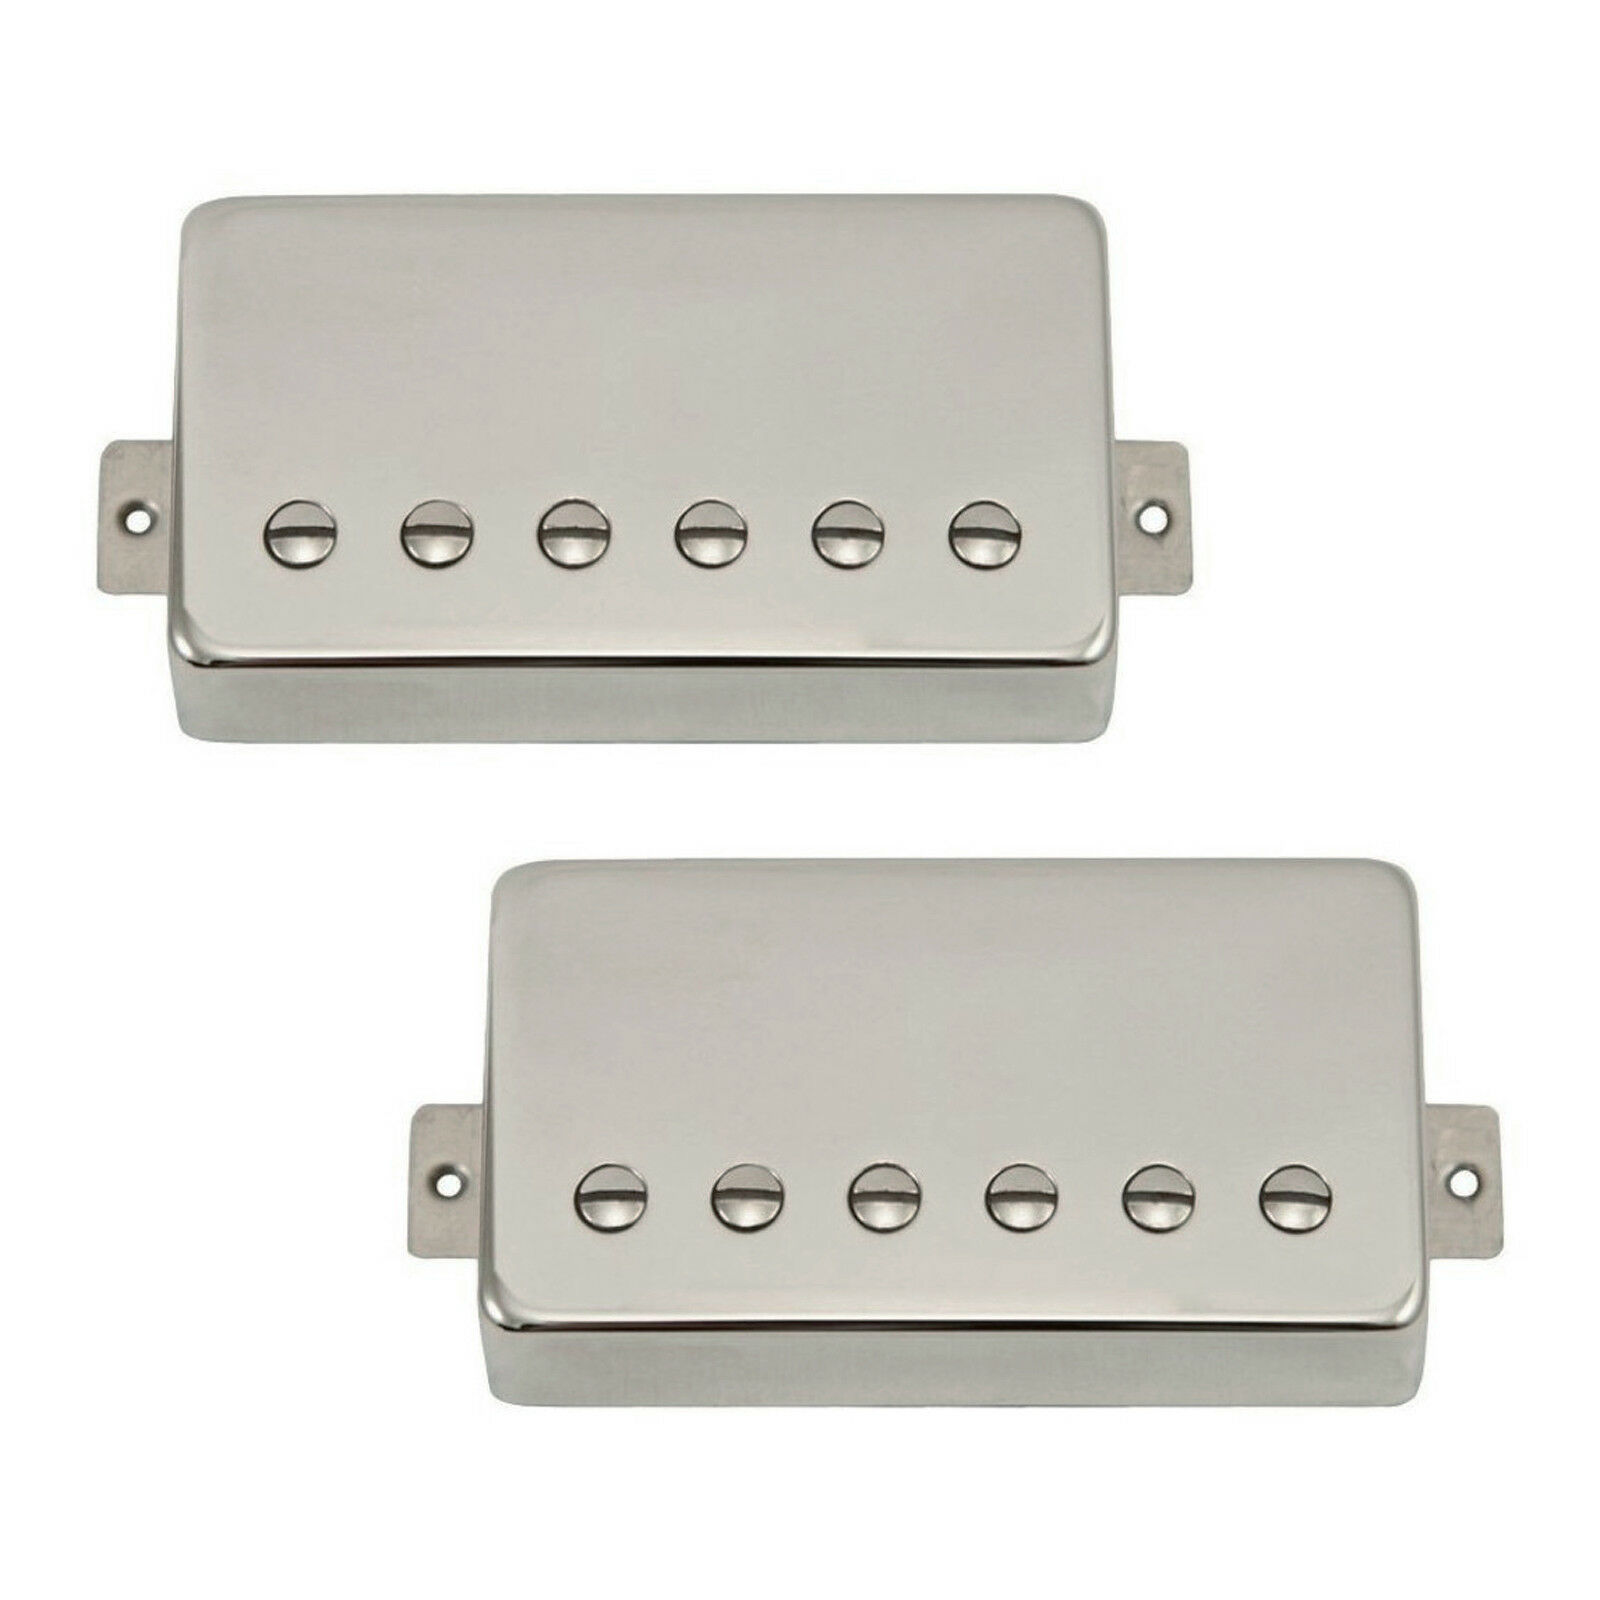 OX4 OX4 OX4 bajo viento PAF Pastillas Humbucker (2) nickel covers cc03cc